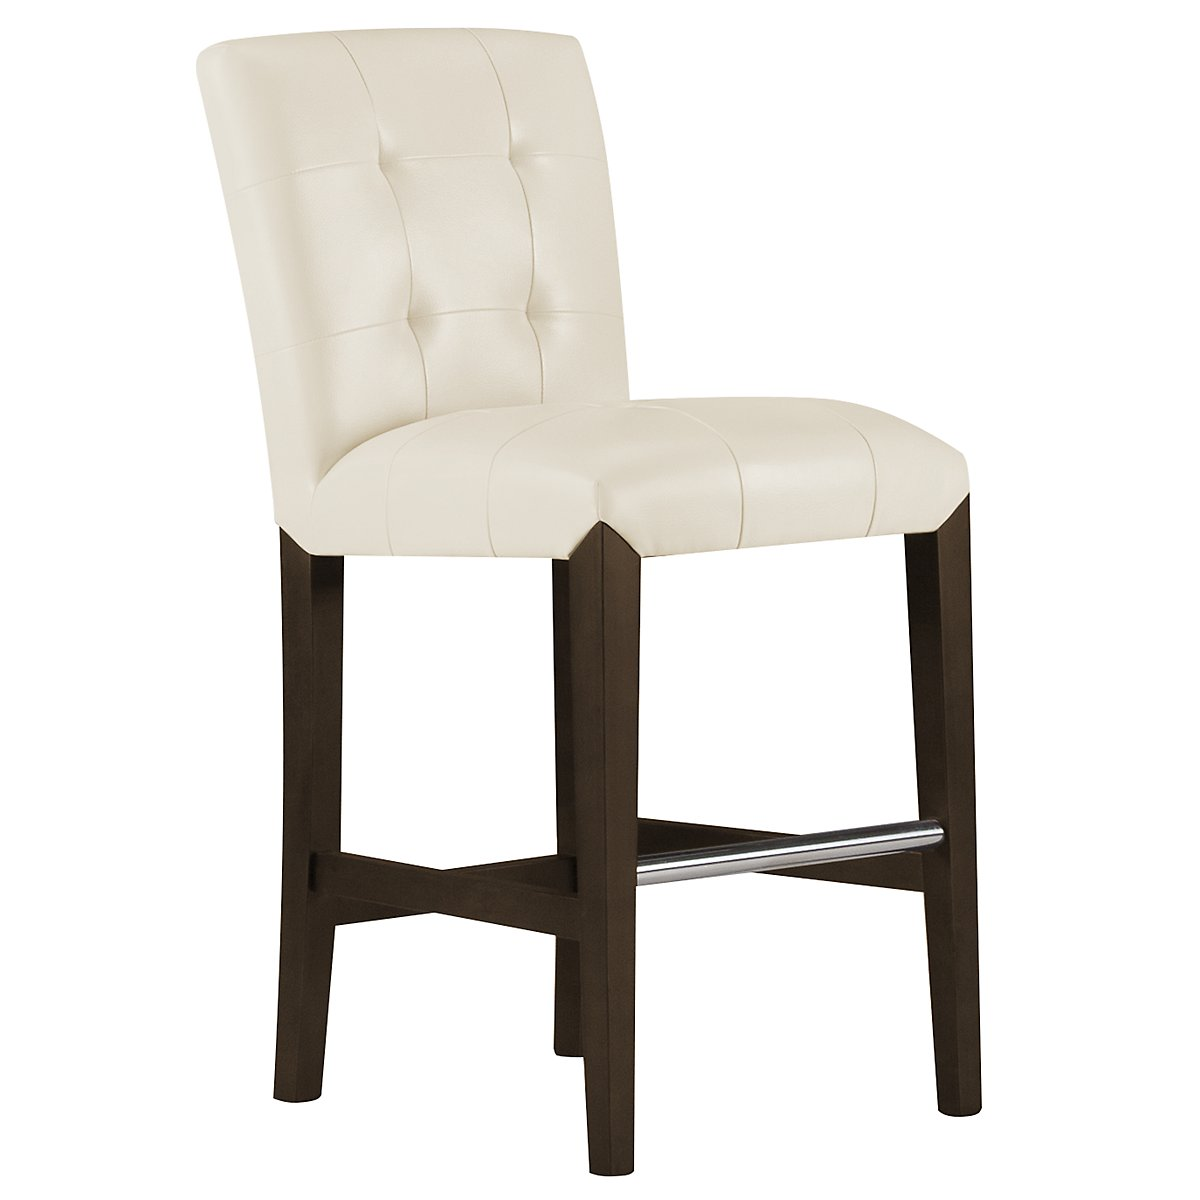 "Trisha2 Light Beige Bonded Leather 24"" Upholstered Barstool"